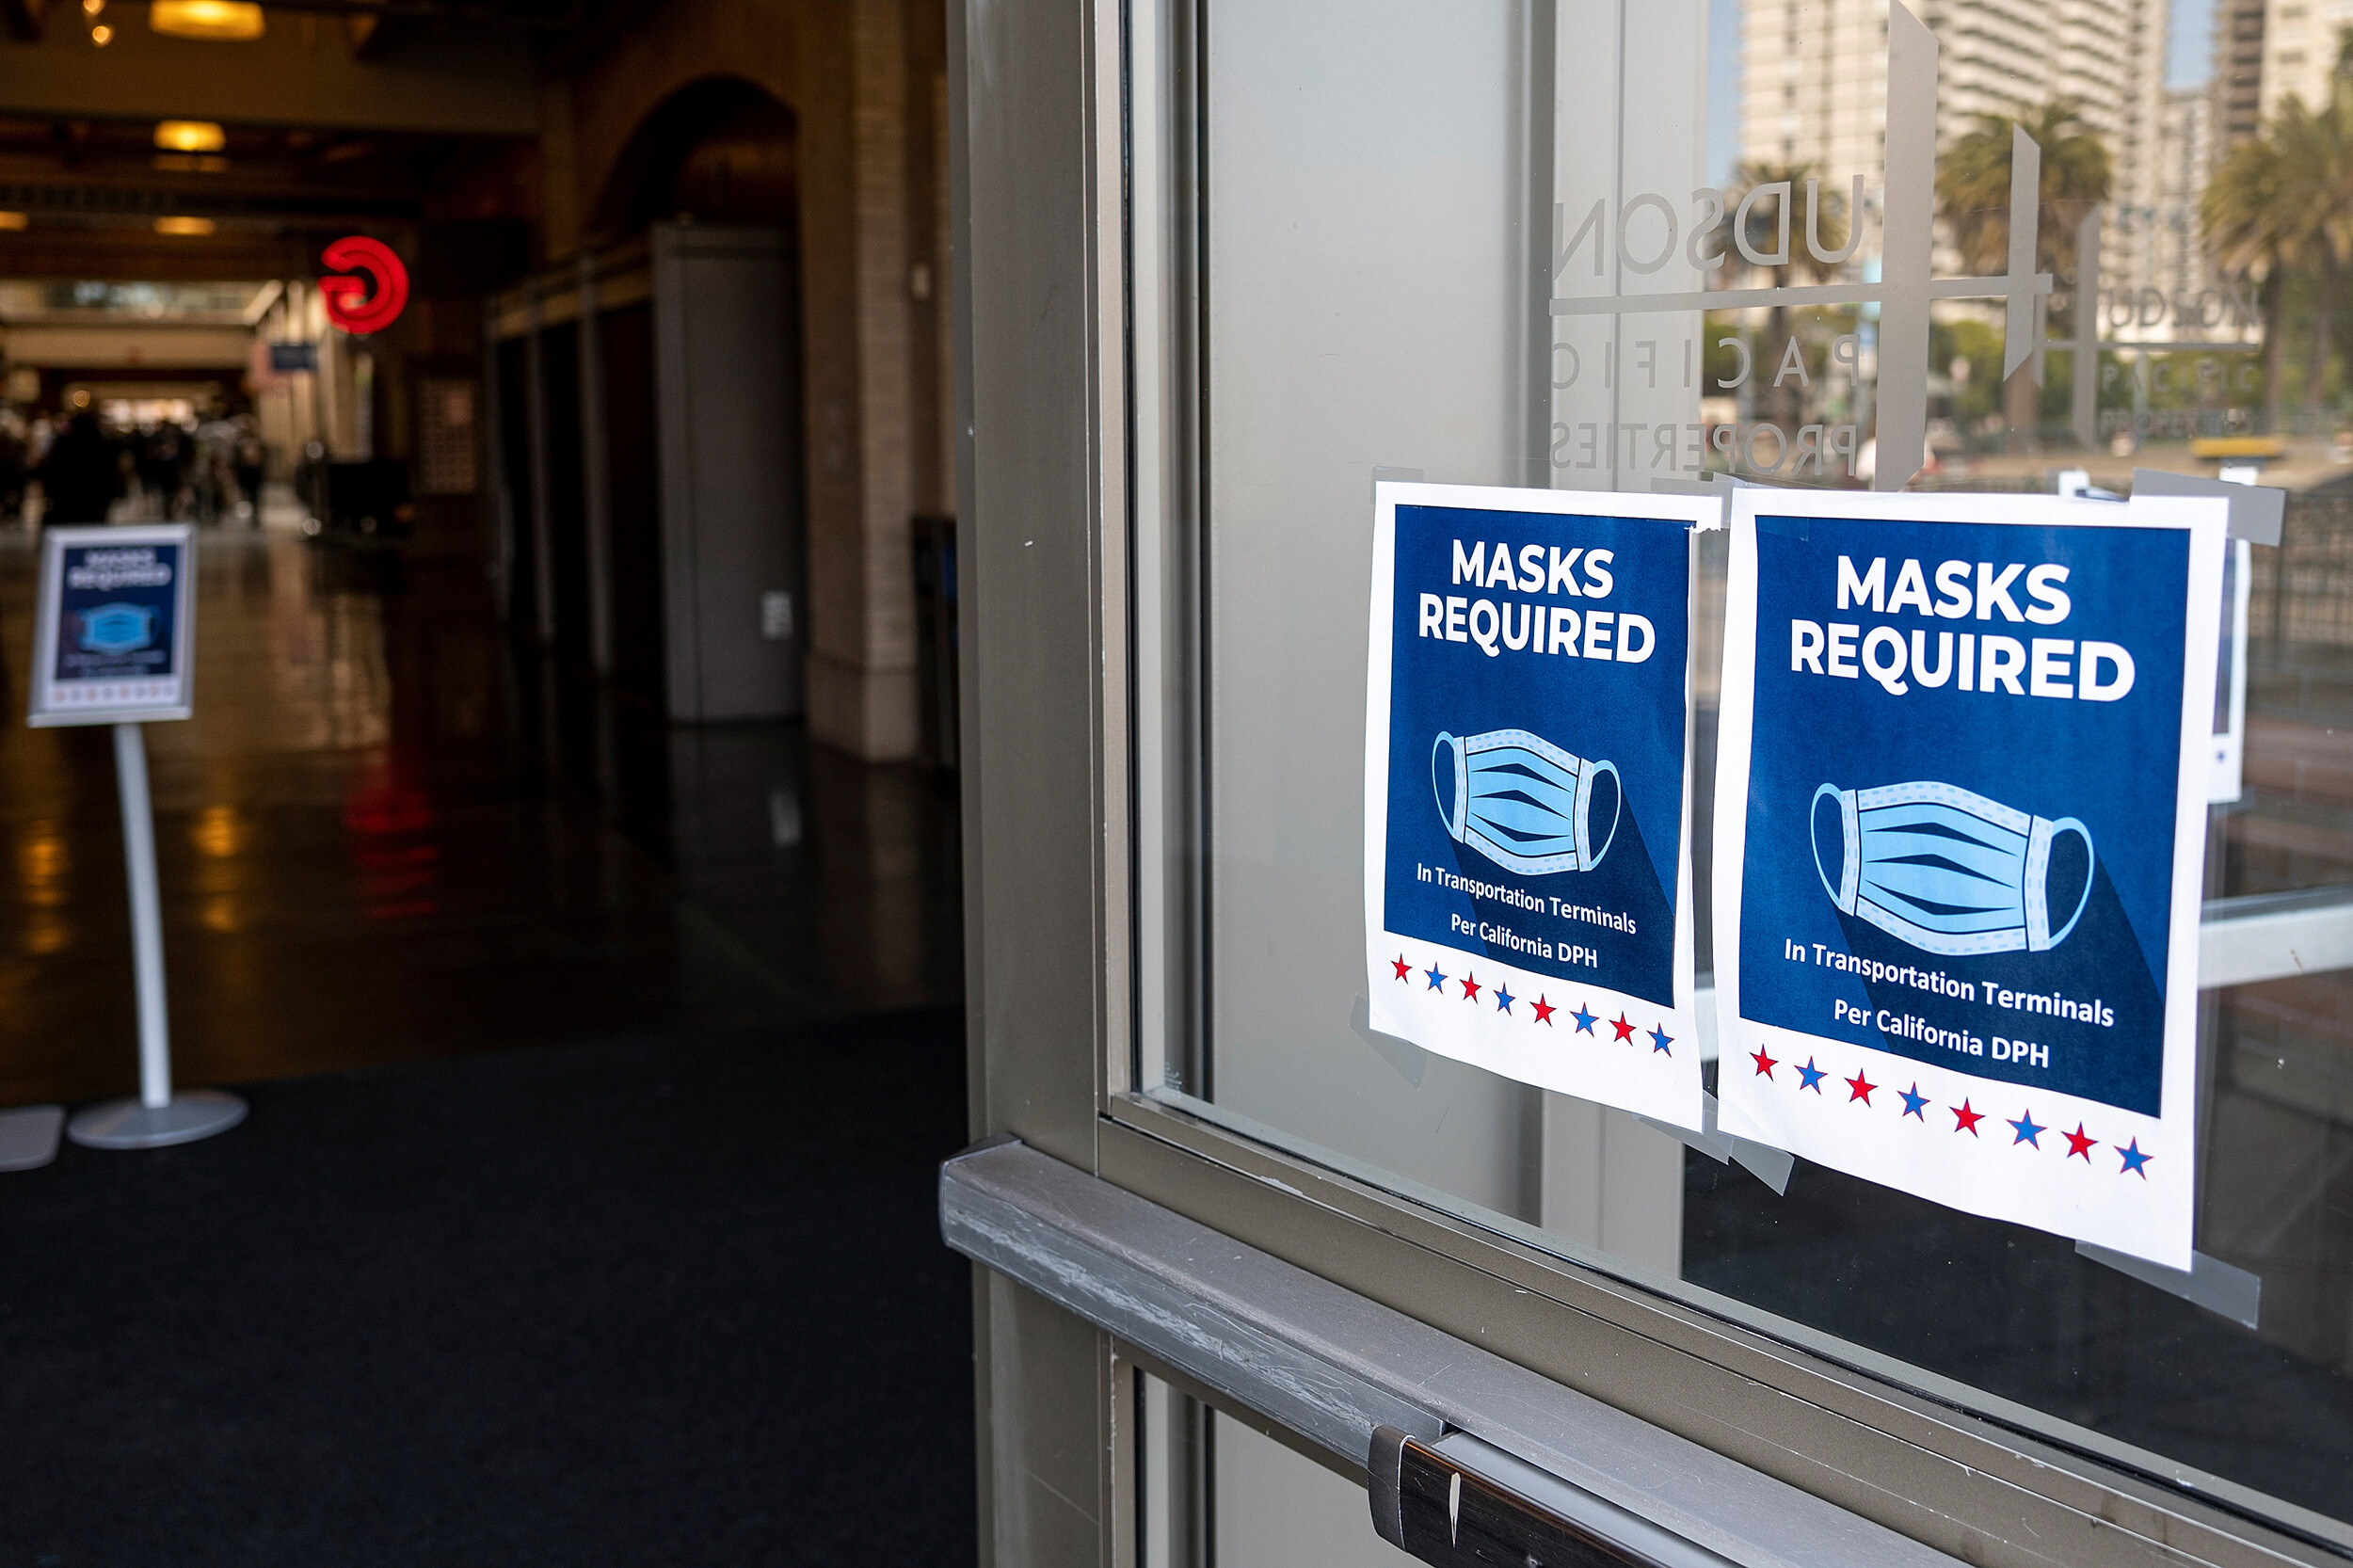 <i>avid Paul Morris/Bloomberg/Getty Images/FILE</i><br/>Signs at the Ferry Building in San Francisco last month.